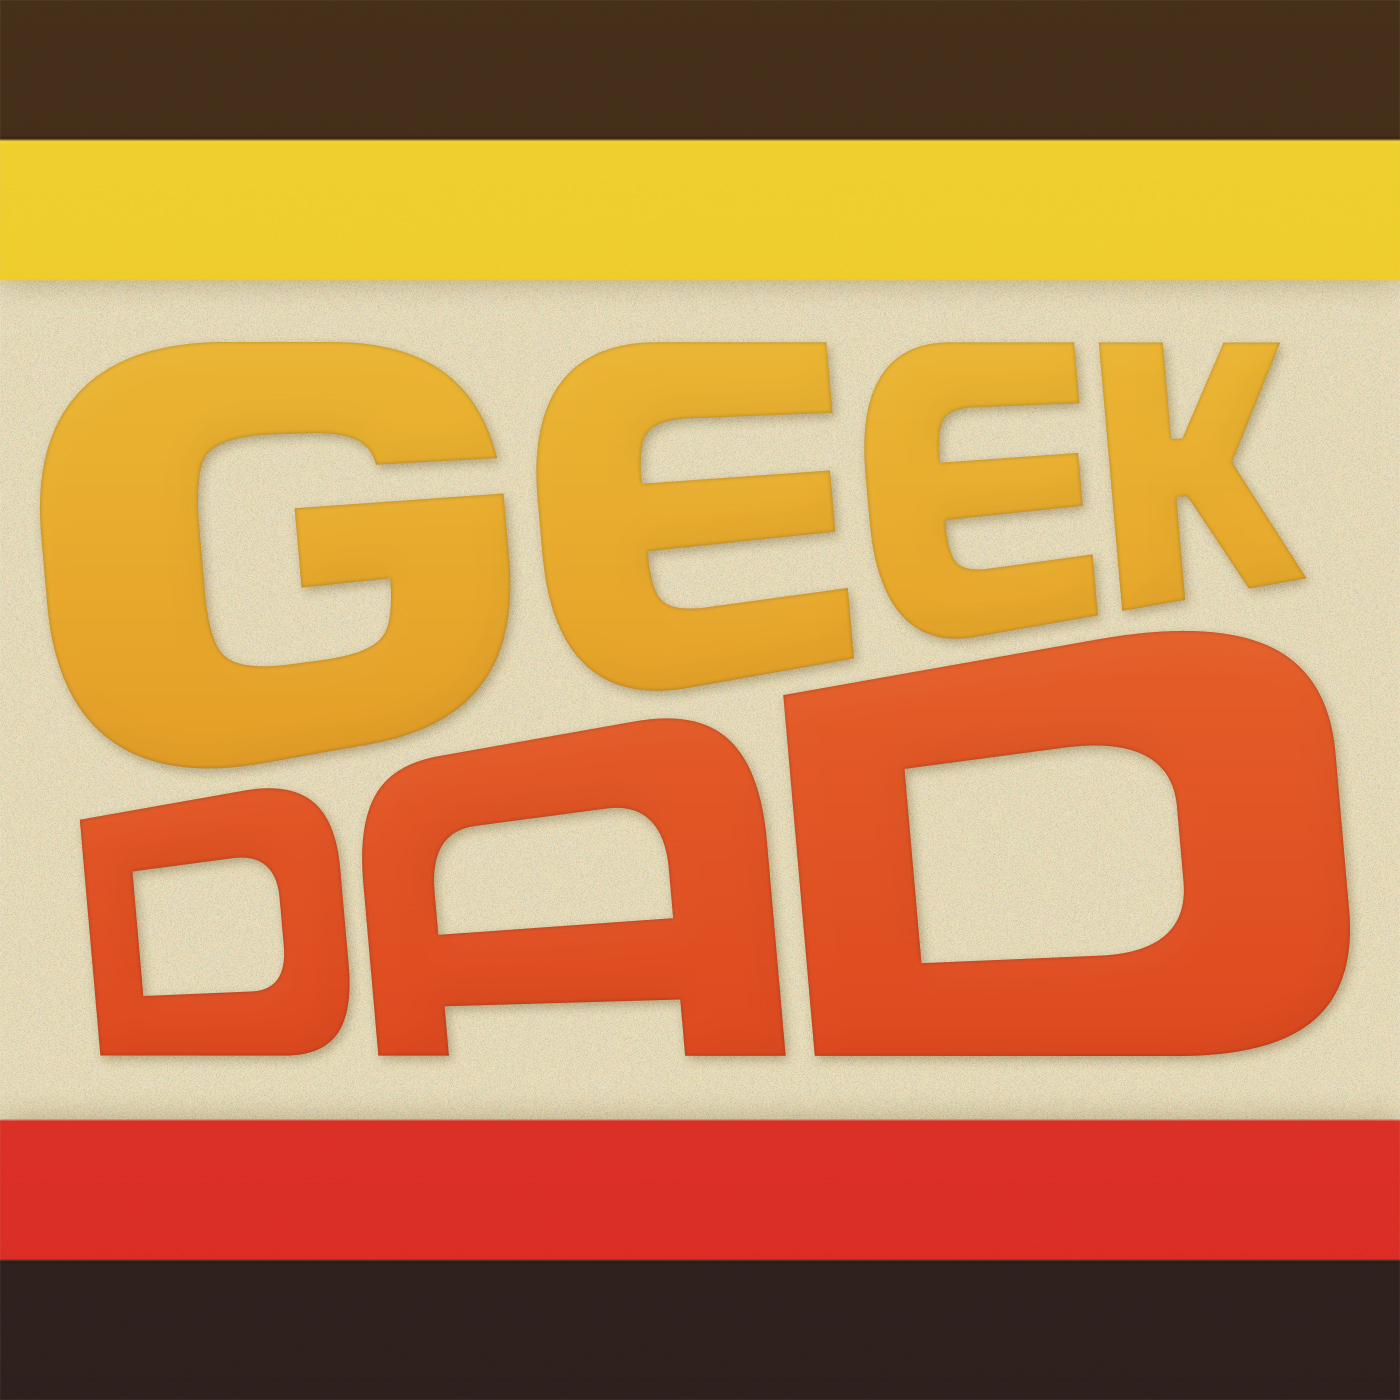 The Geekdads By Geekdad Podcast Network On Apple Podcasts Simple Audio Mixer Circuit P Marian 12 20 2009